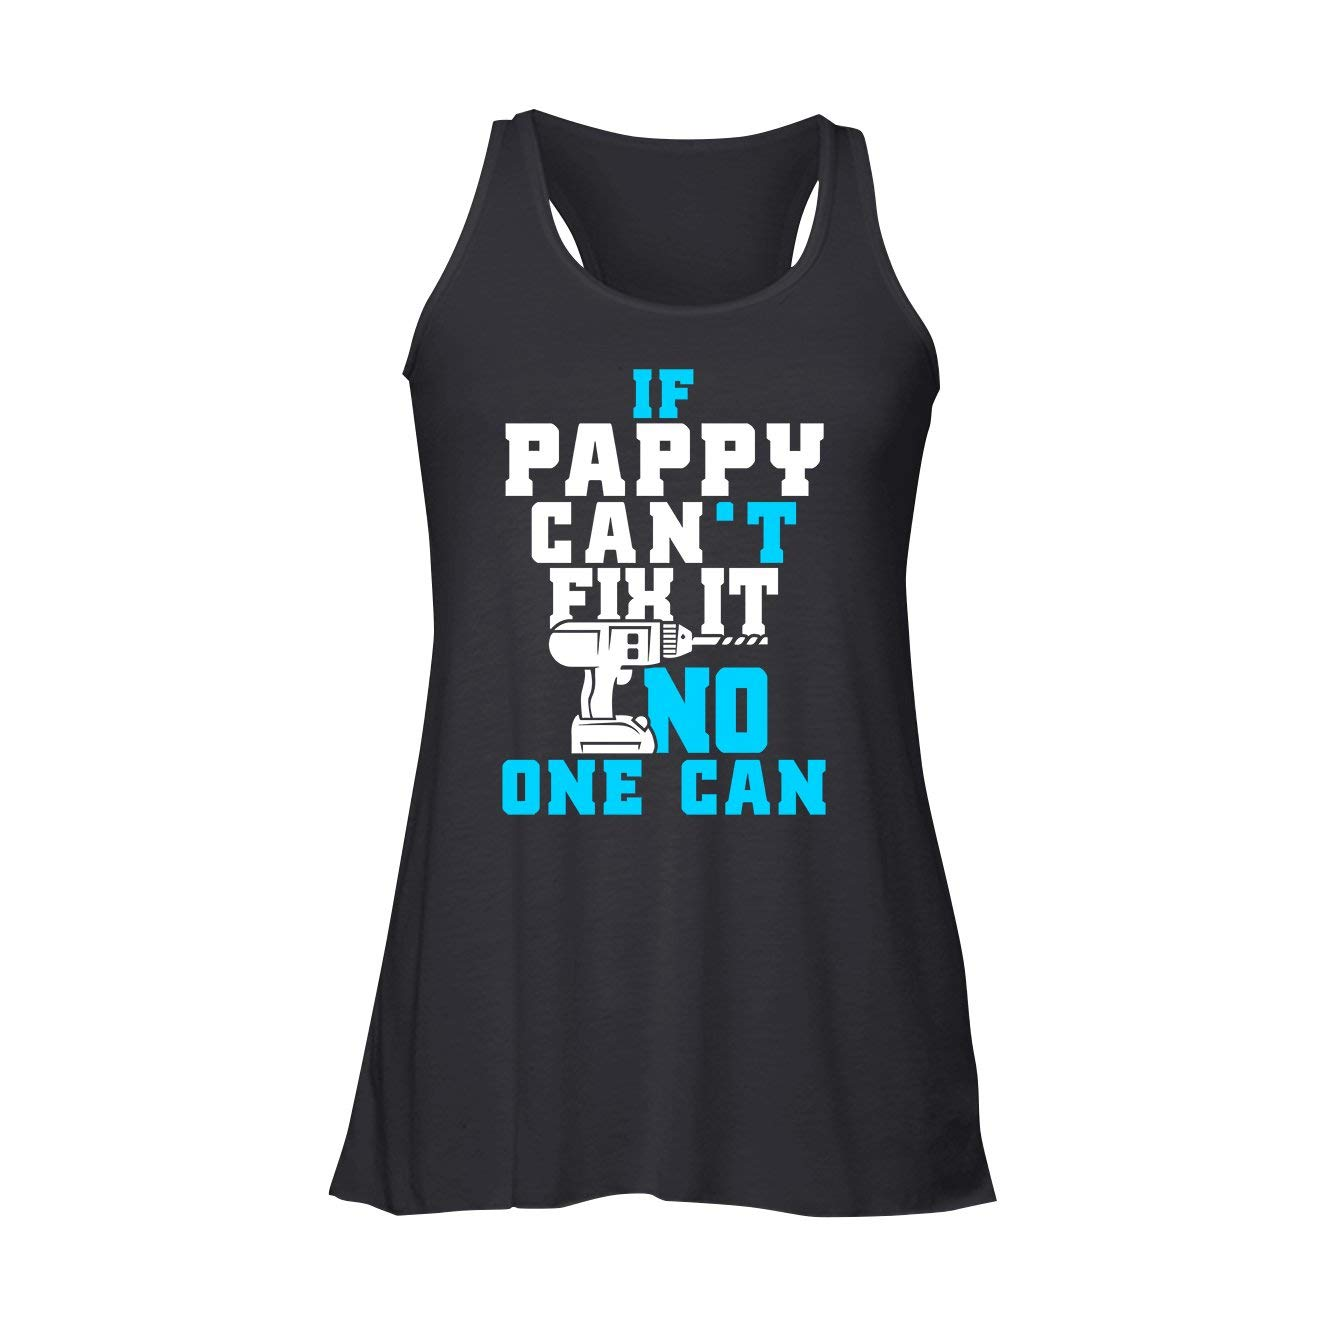 Flowy Racerback Tank  Black AreSheep Pappy Flowy Racerback Tank Top, If Pappy Can't Fix It, No One Can Tshirt